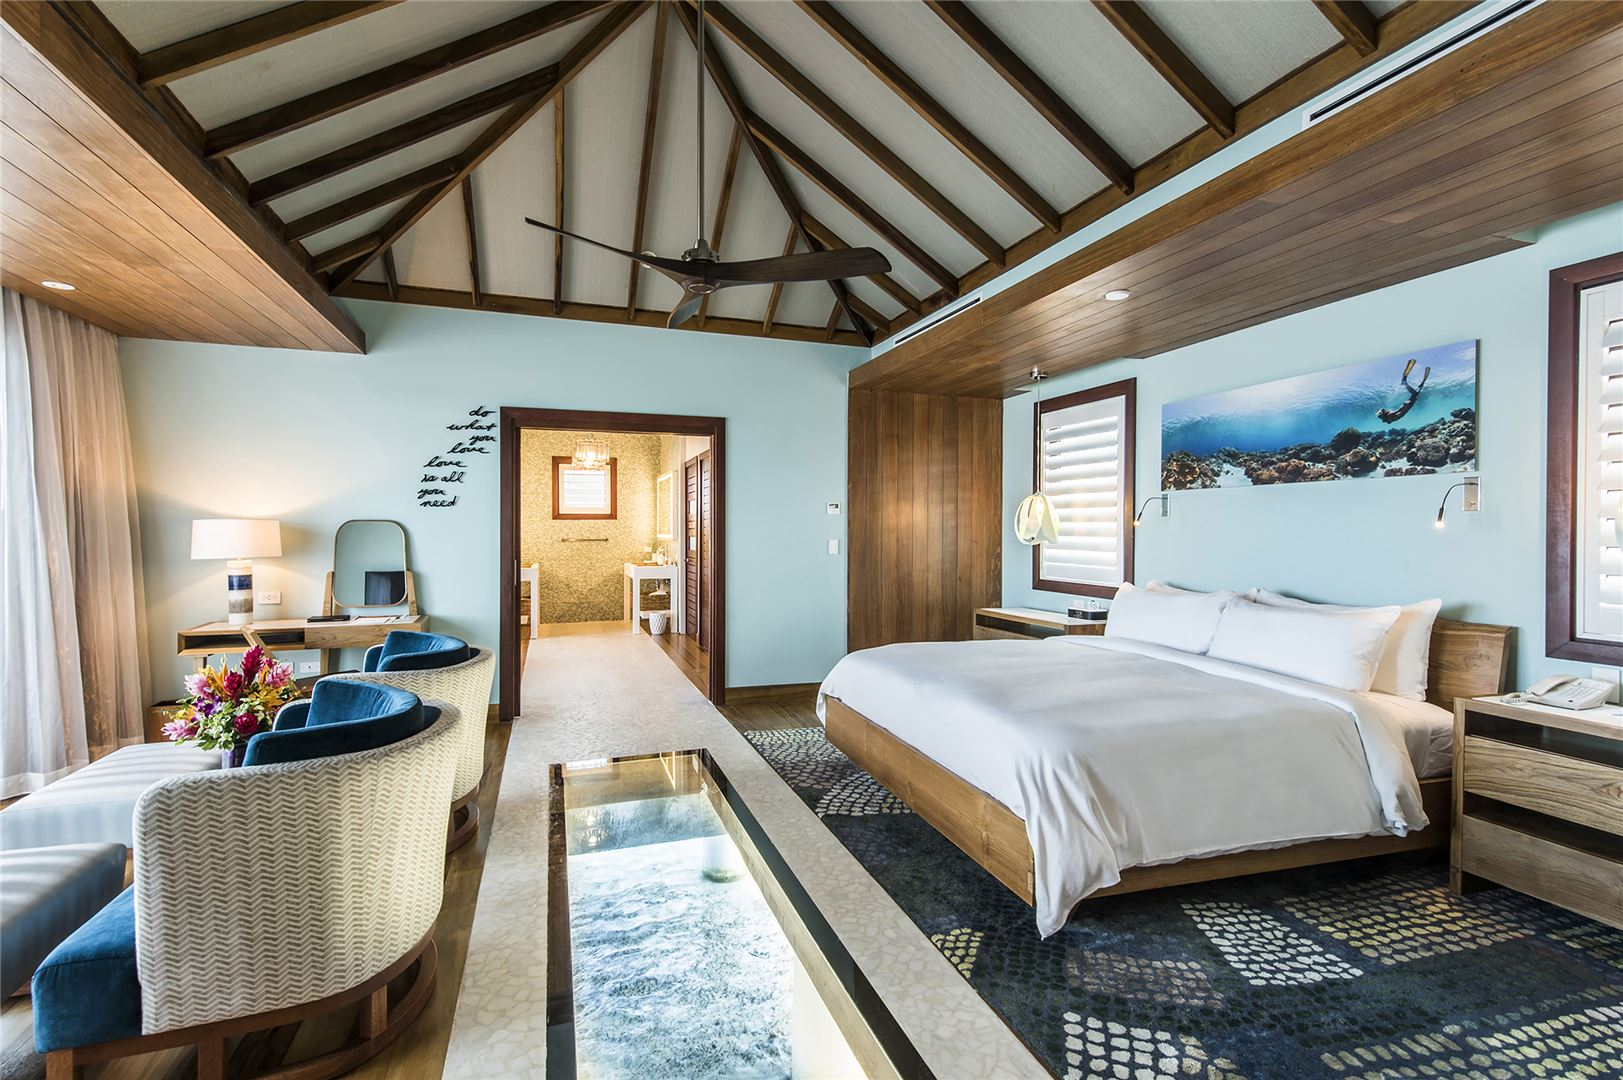 Interior Of The Water Themed Suite